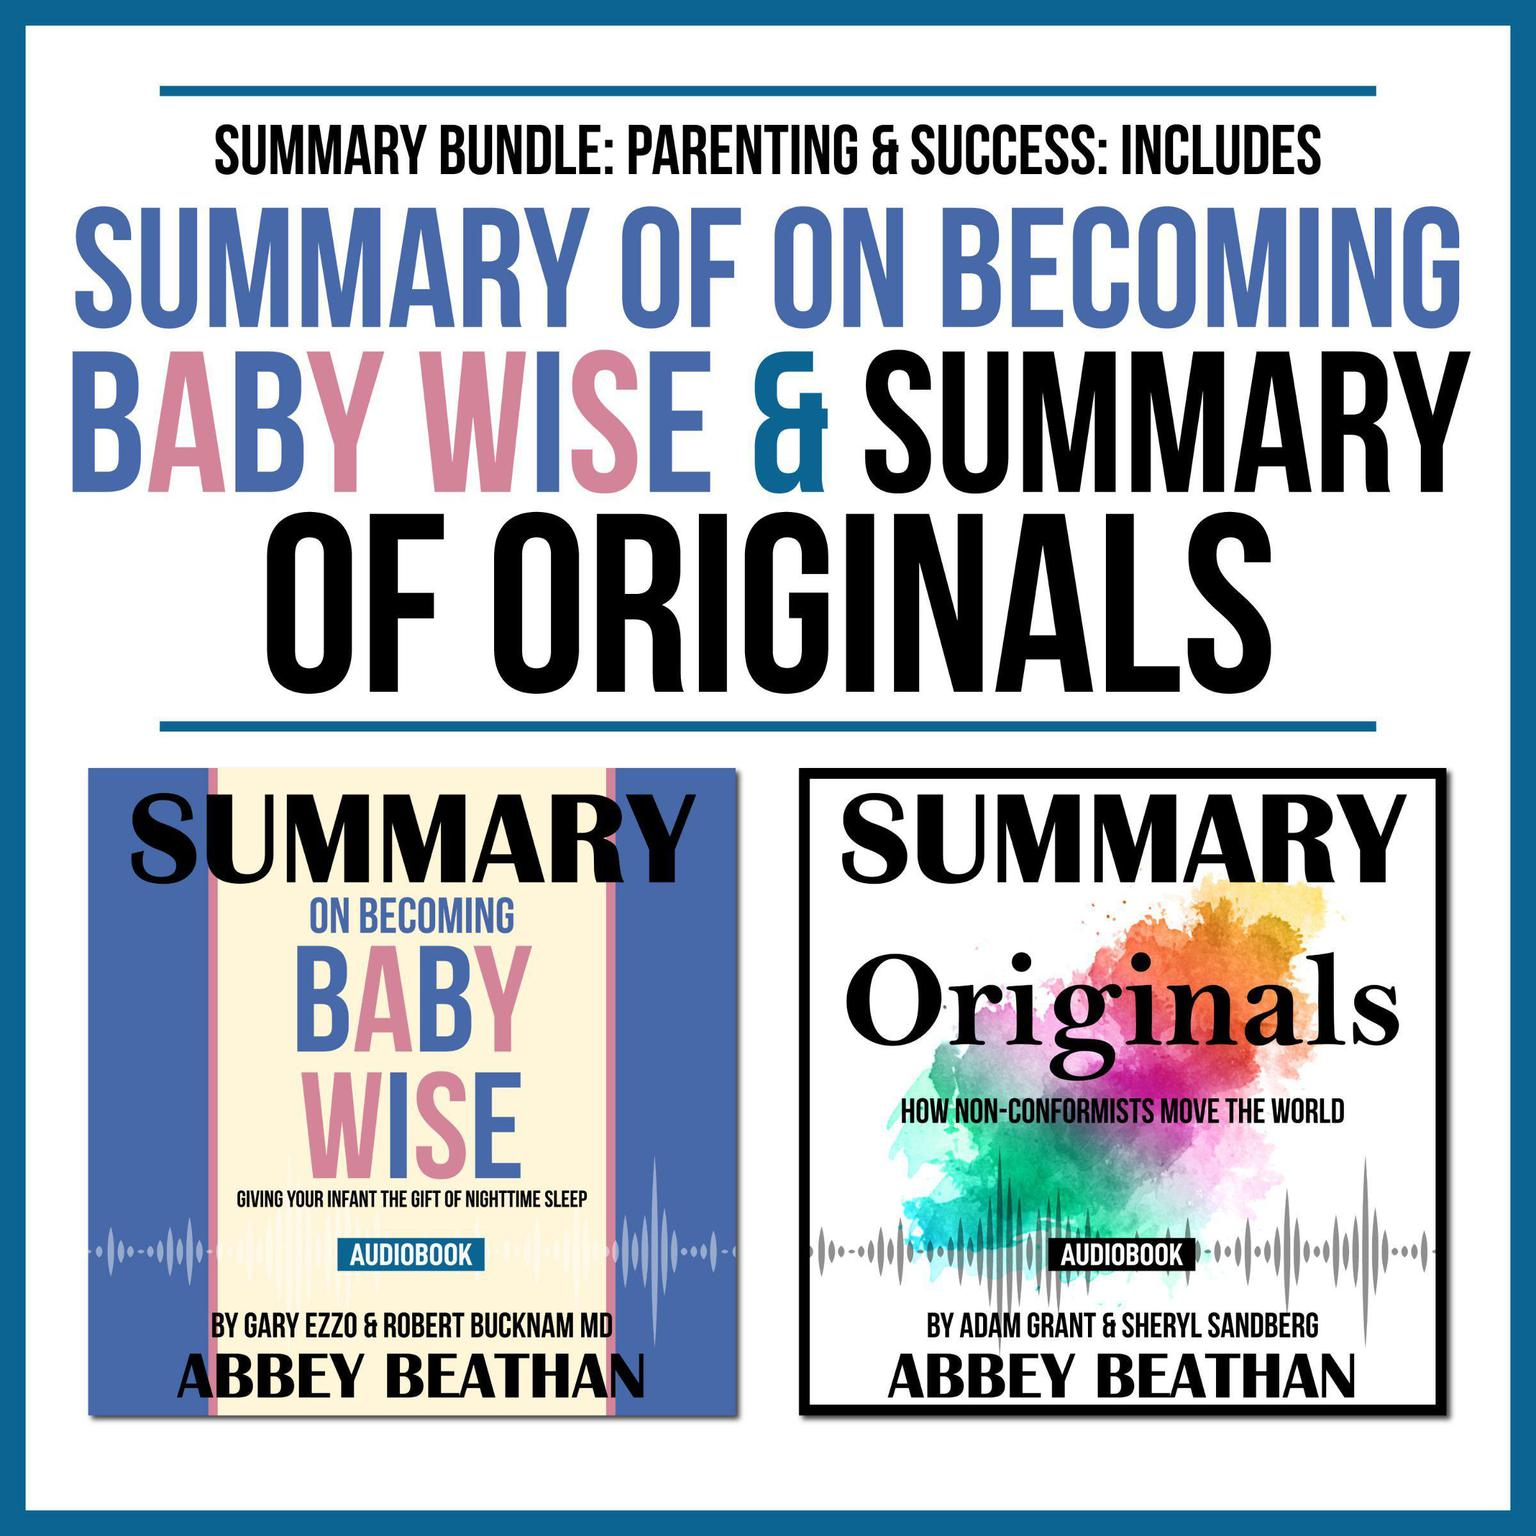 Summary Bundle: Parenting & Success: Includes Summary of On Becoming Baby Wise & Summary of Originals Audiobook, by Abbey Beathan